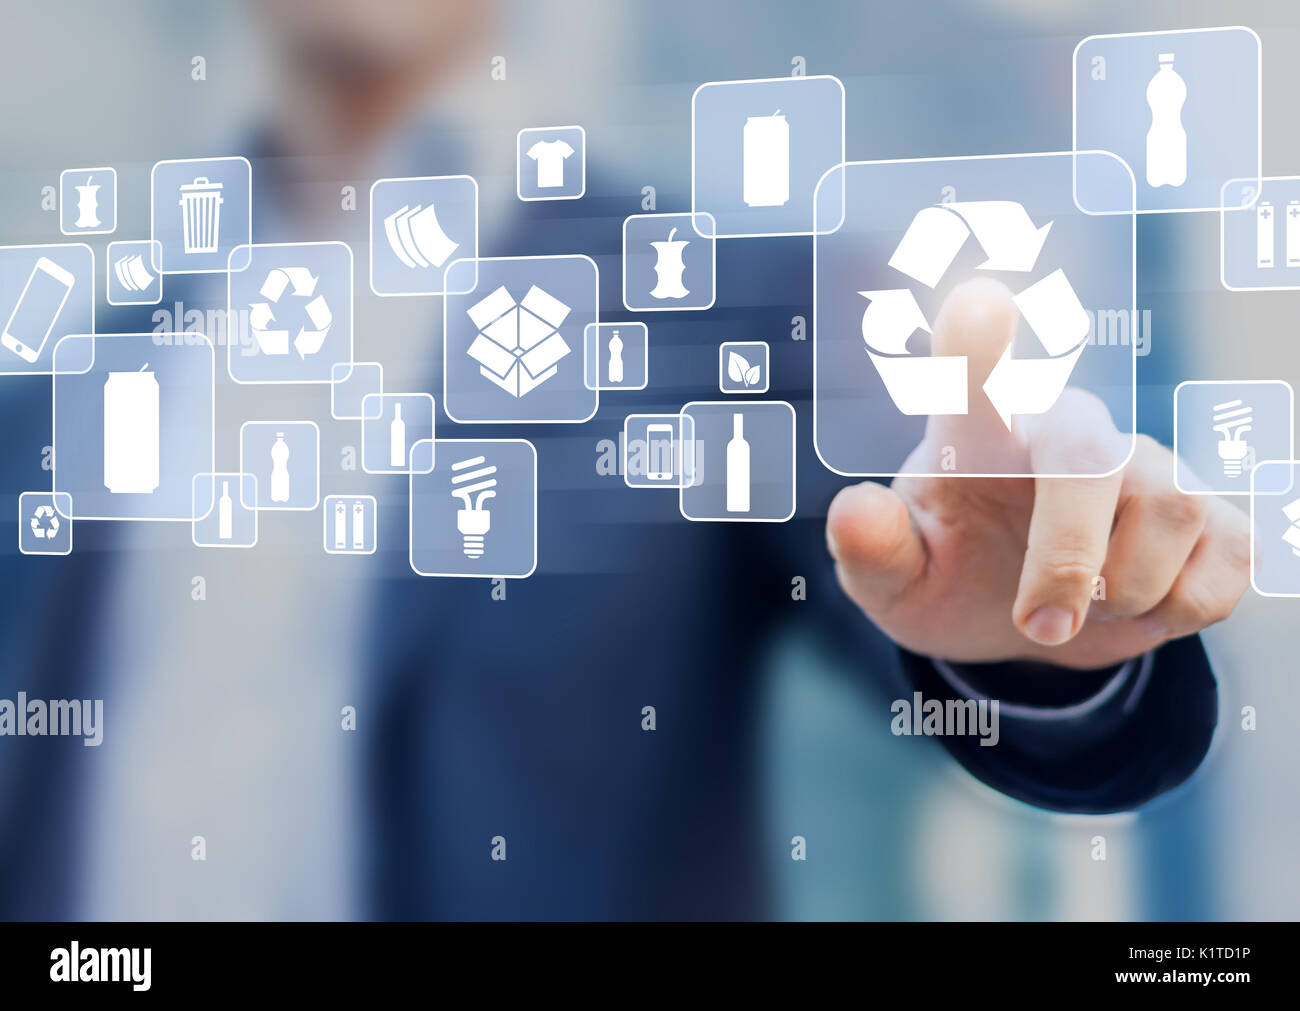 Recyclable waste materials sorting management on virtual computer screen and person touching recycling icon (paper, plastic, metal can, glass bottle,  - Stock Image